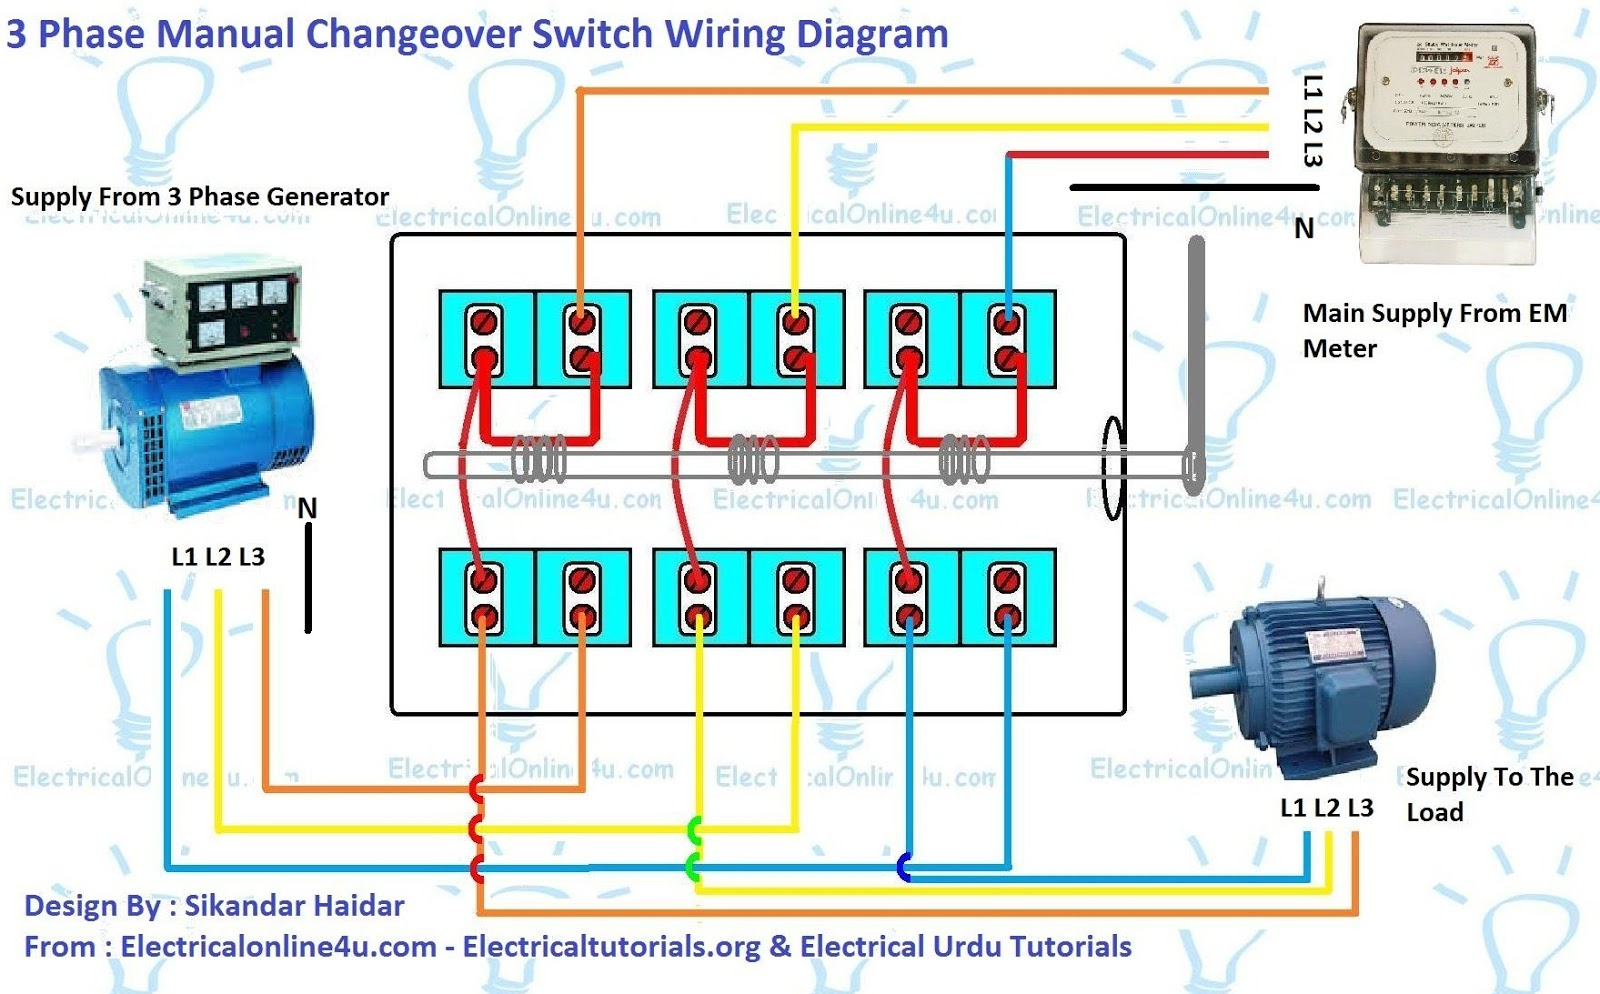 3%2Bphase%2Bmanual%2Bchangeover%2Bswitch%2Bwiring%2Bdiagram 3 phase manual changeover switch wiring diagram for generator 3 phase generator wiring at gsmx.co